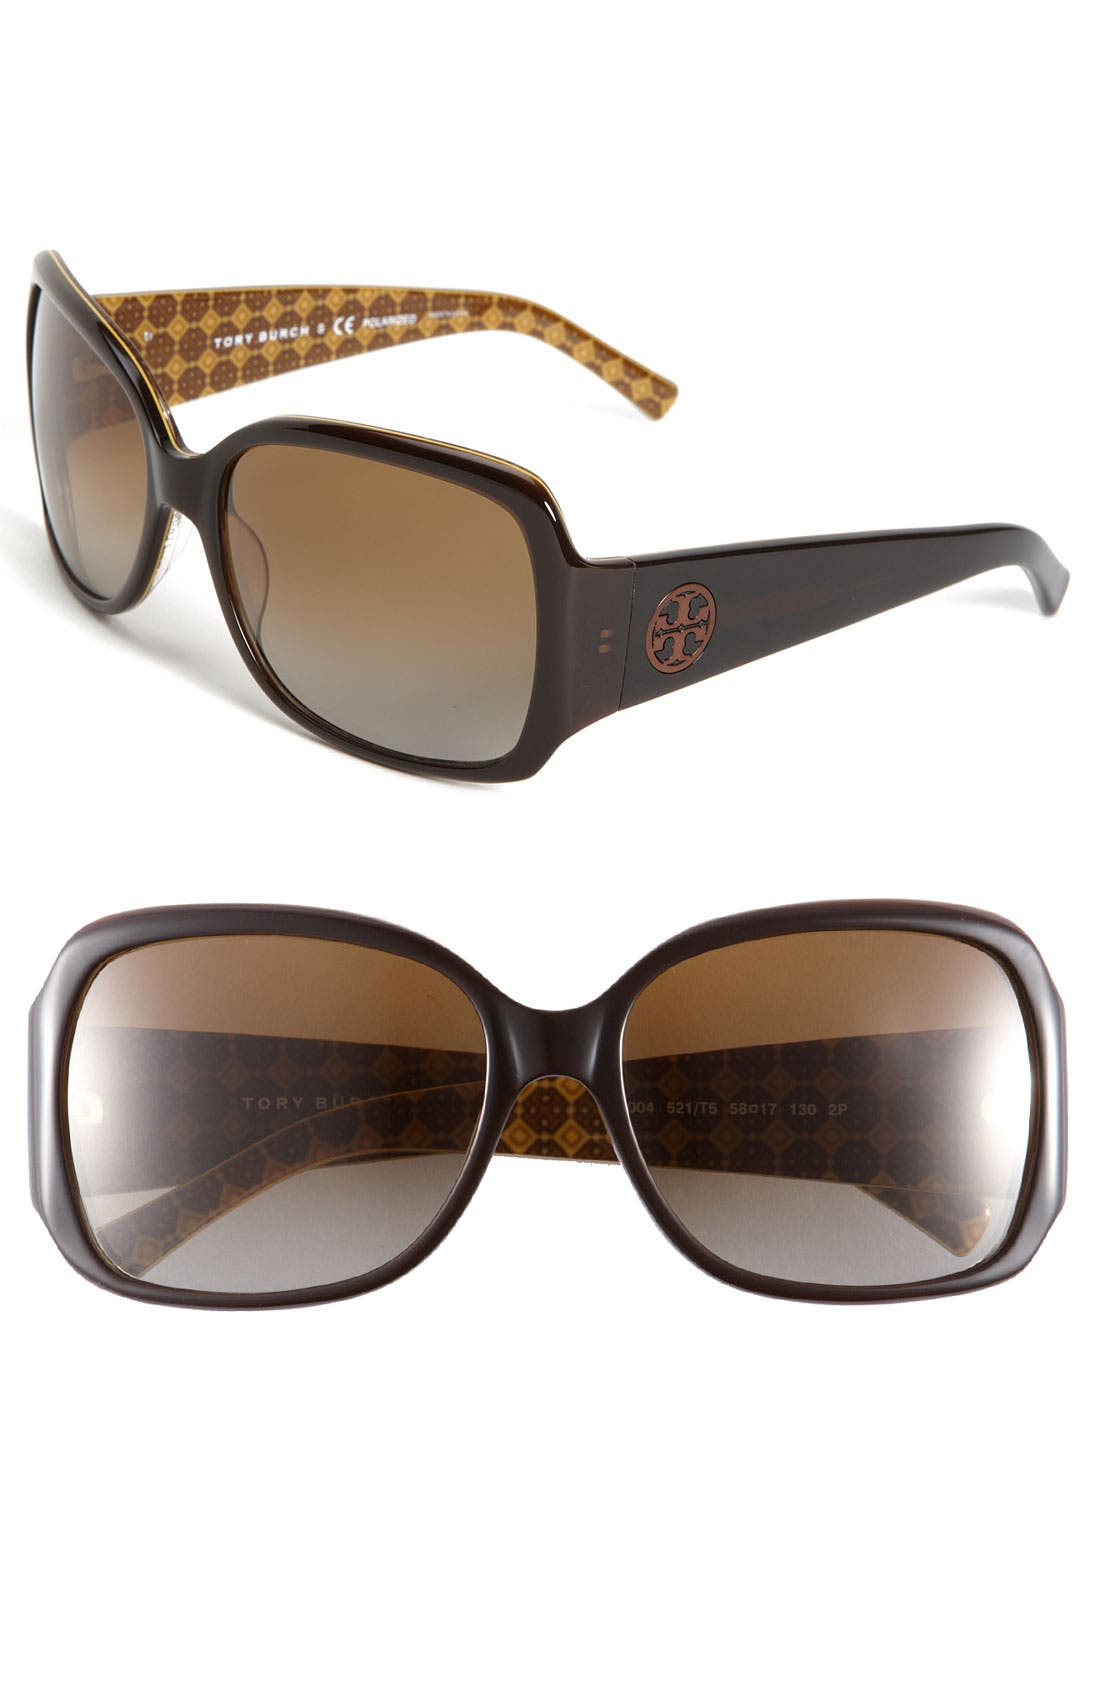 Alternate Image 1 Selected - Tory Burch Polarized Square Sunglasses